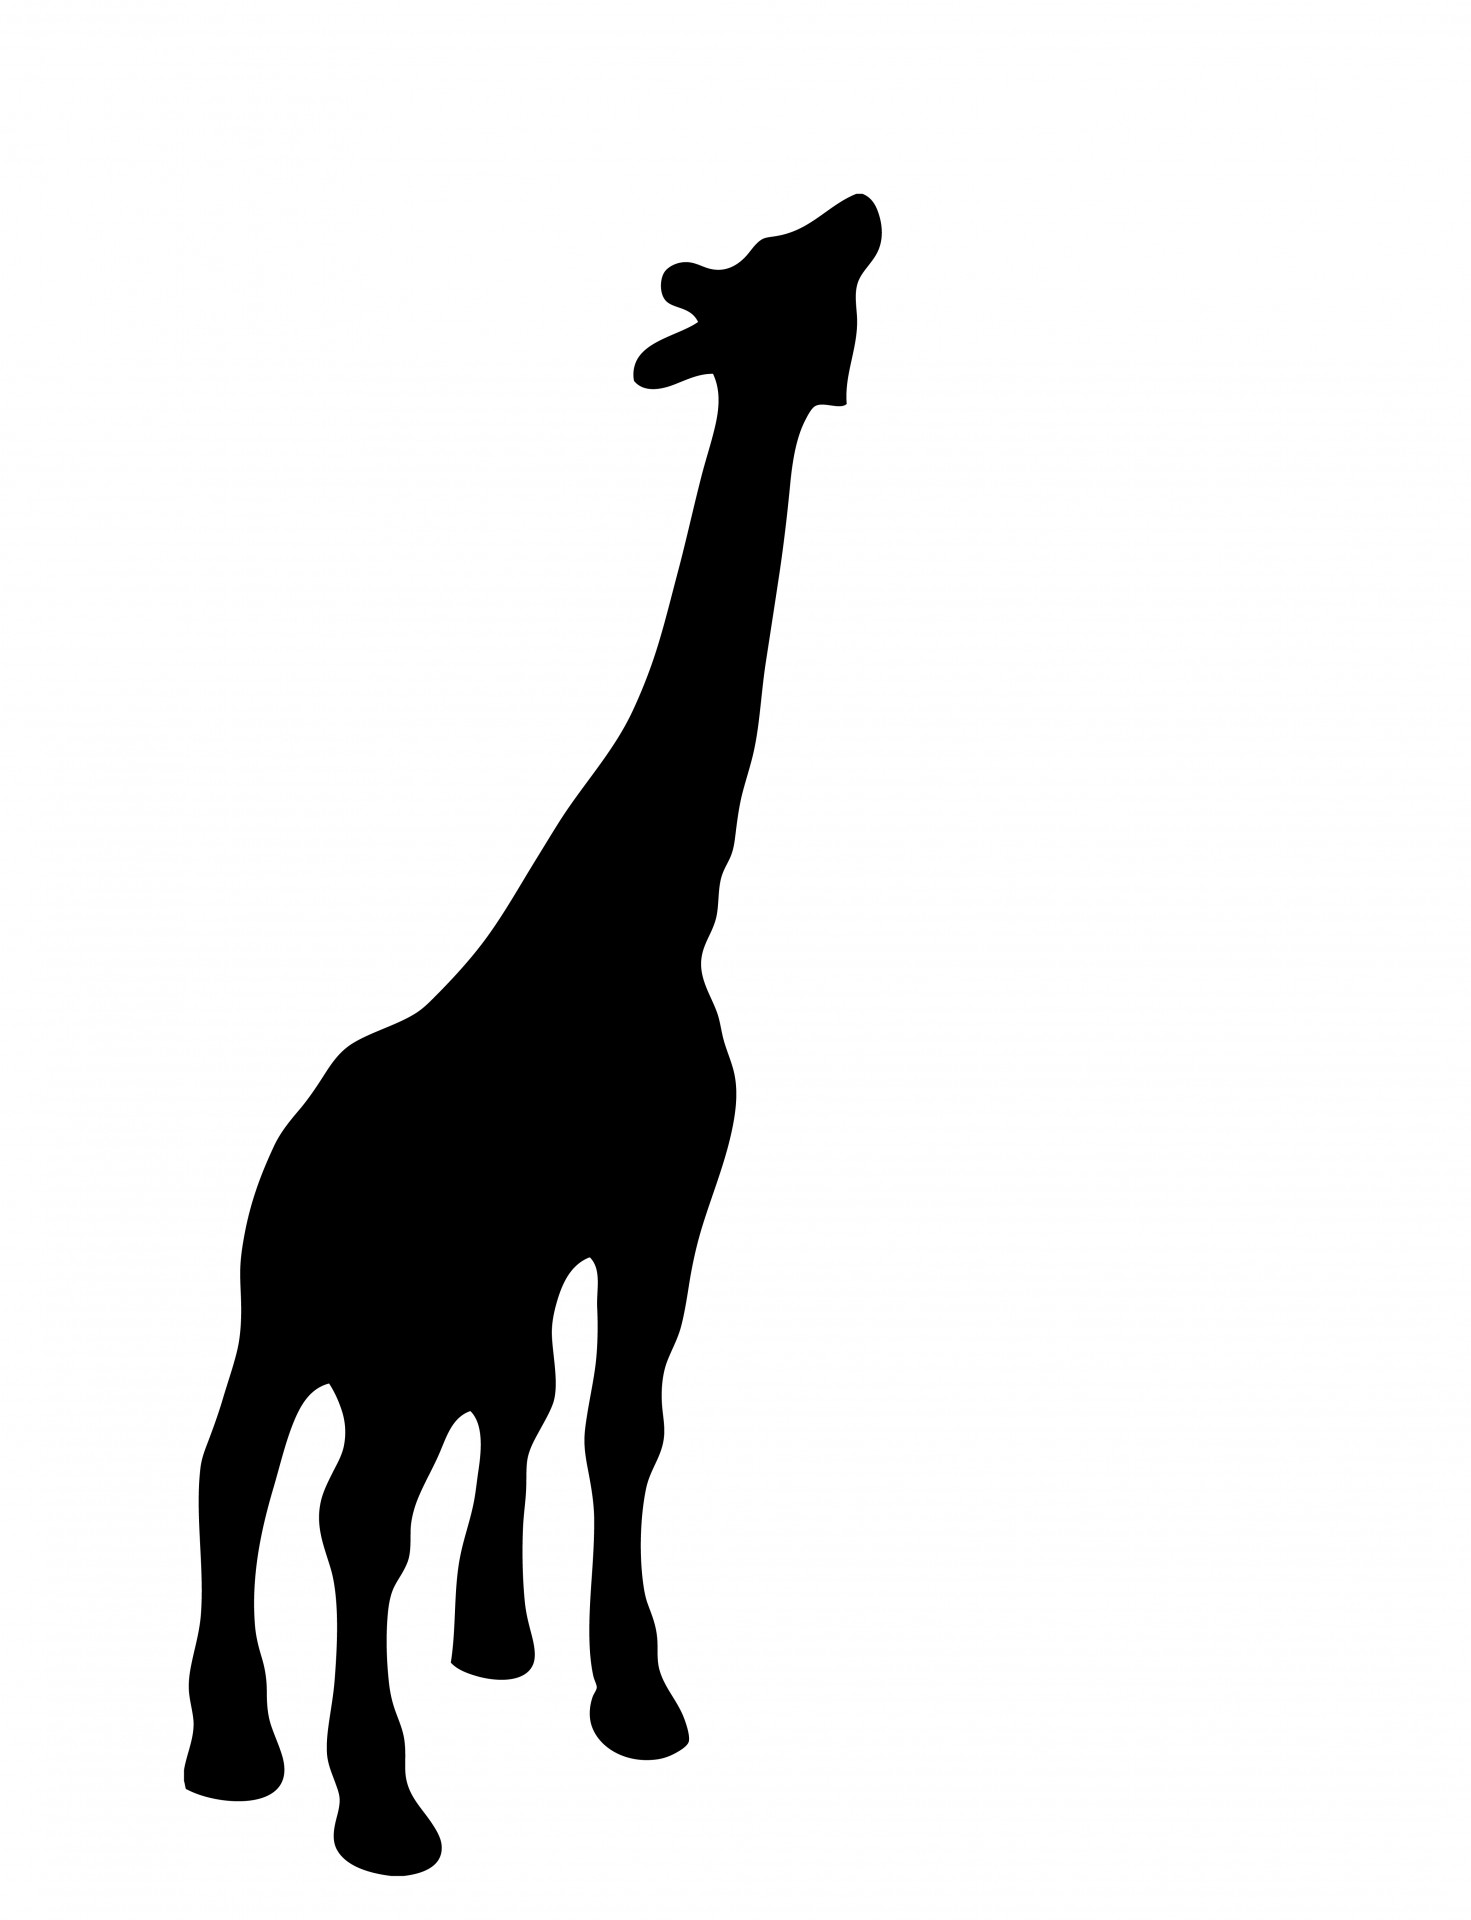 1471x1920 Giraffe Black Silhouette Free Stock Photo